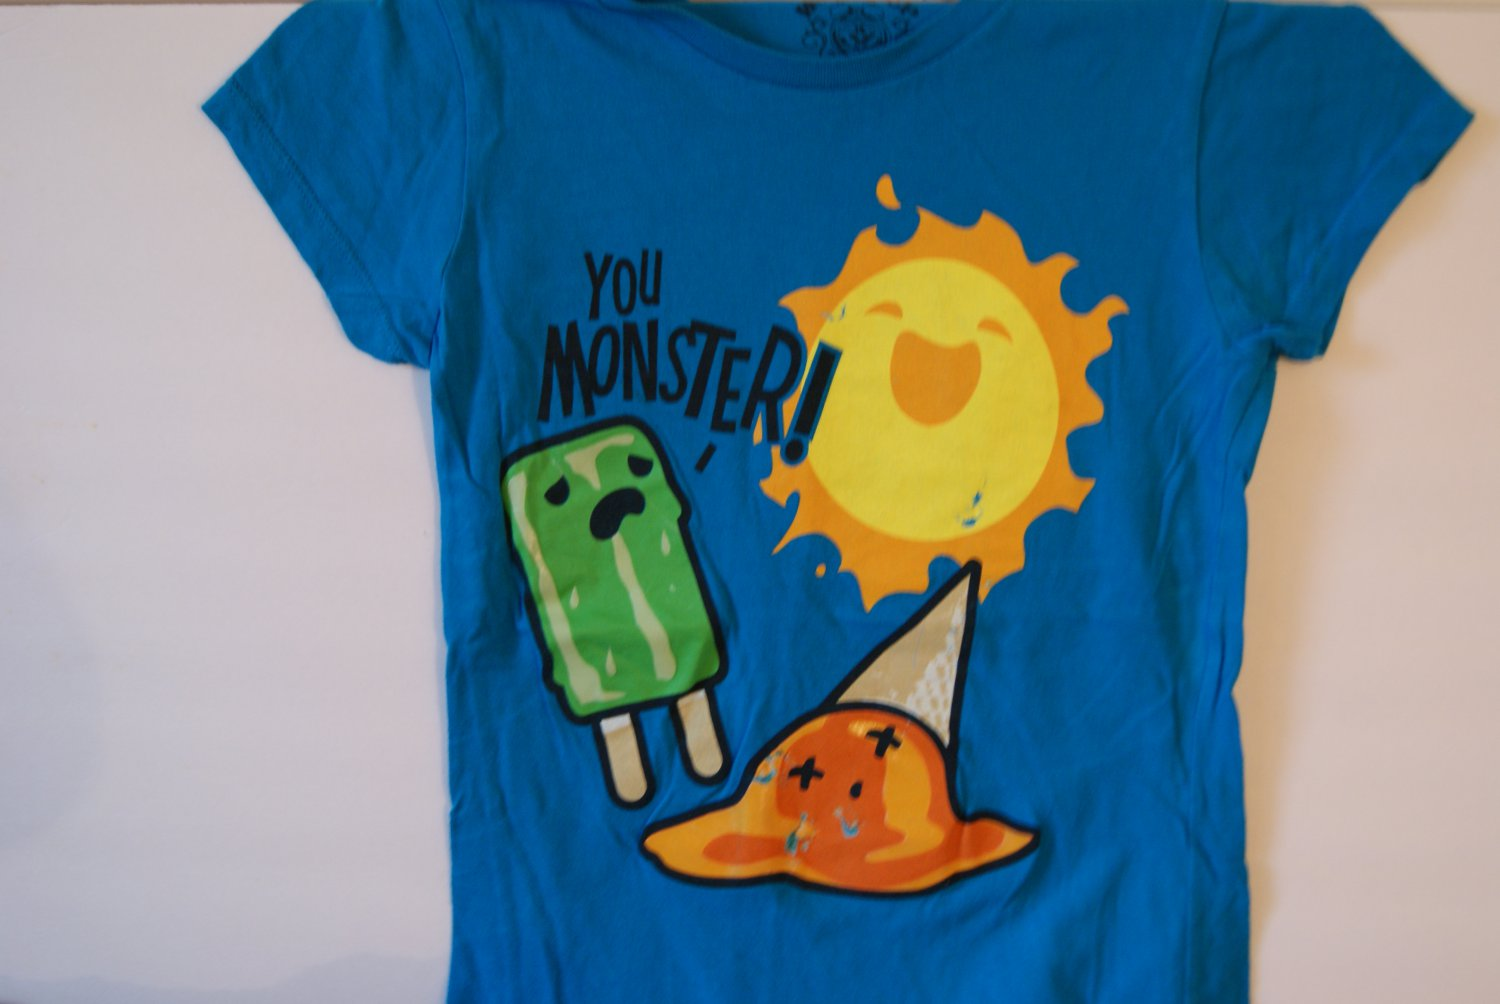 You Monster tee